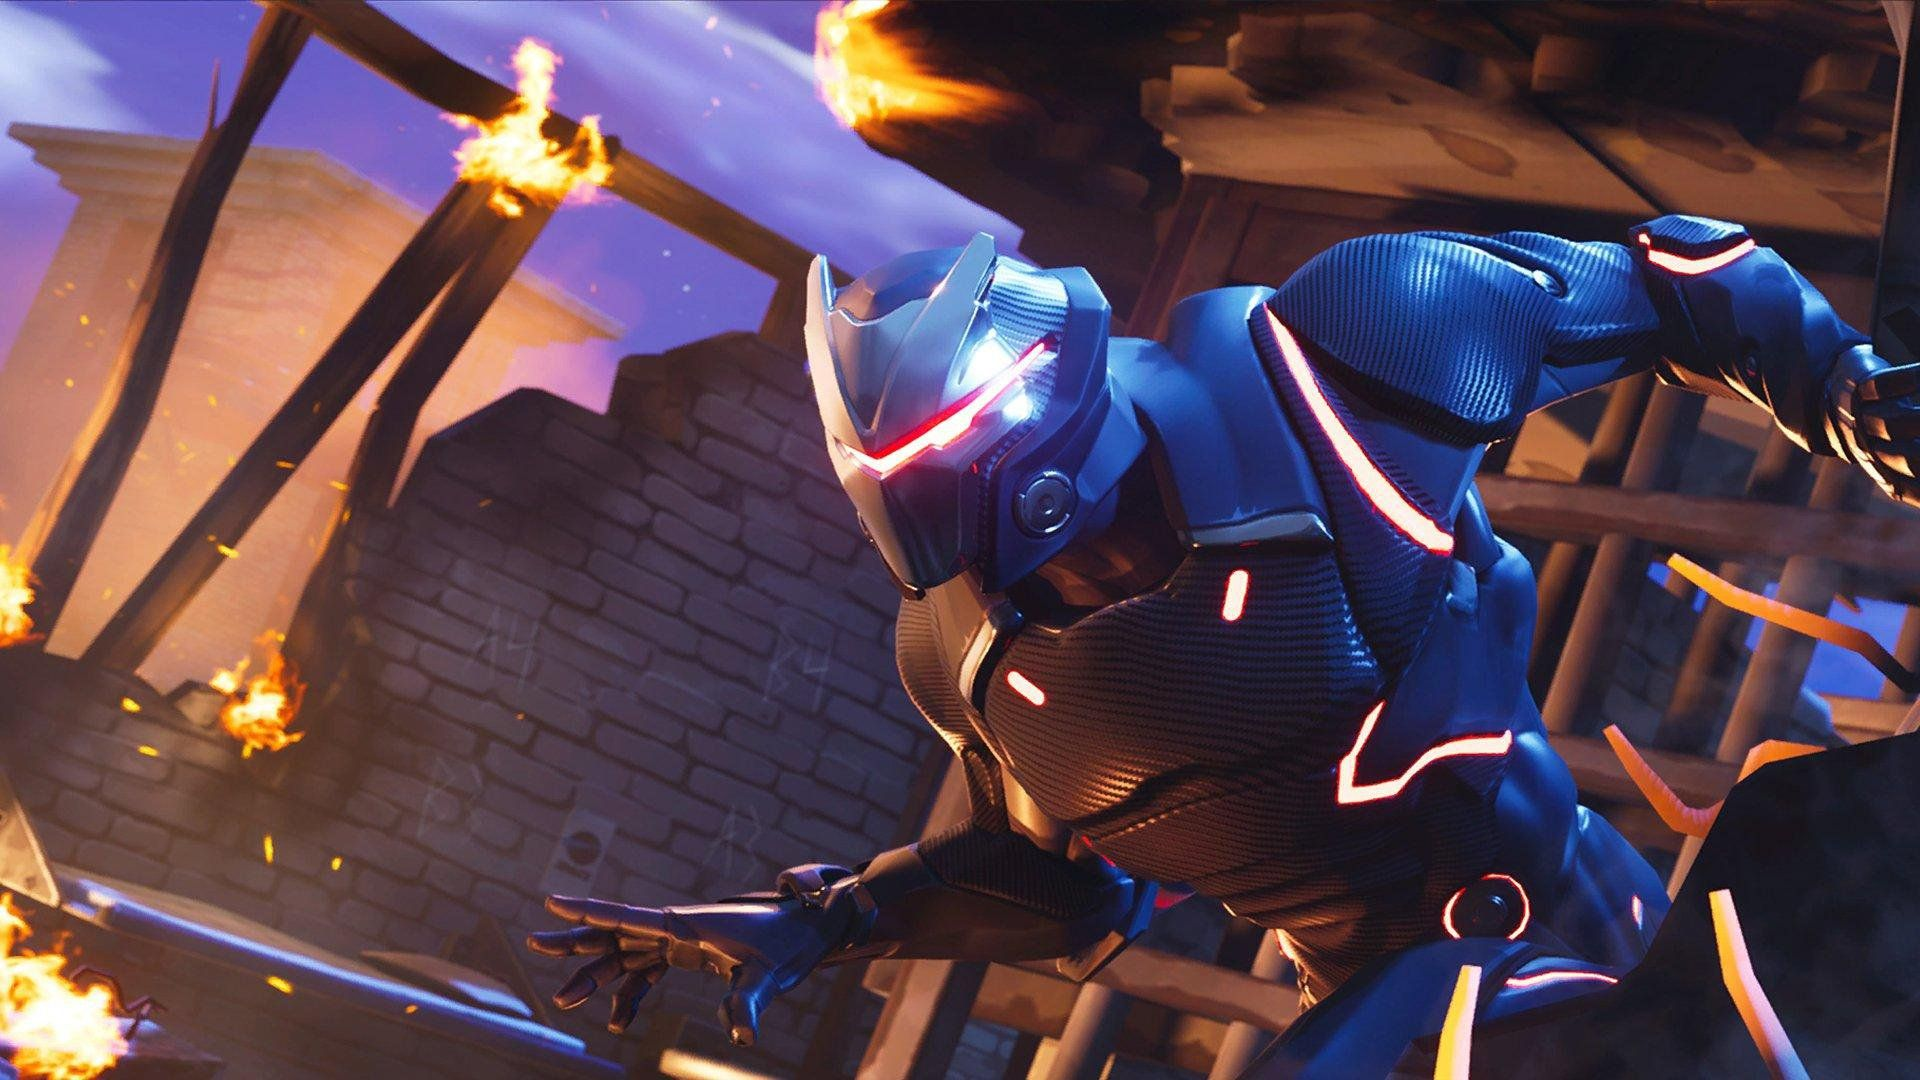 Wallpaper Cool Full Screen Cool Wallpaper Fortnite Pictures